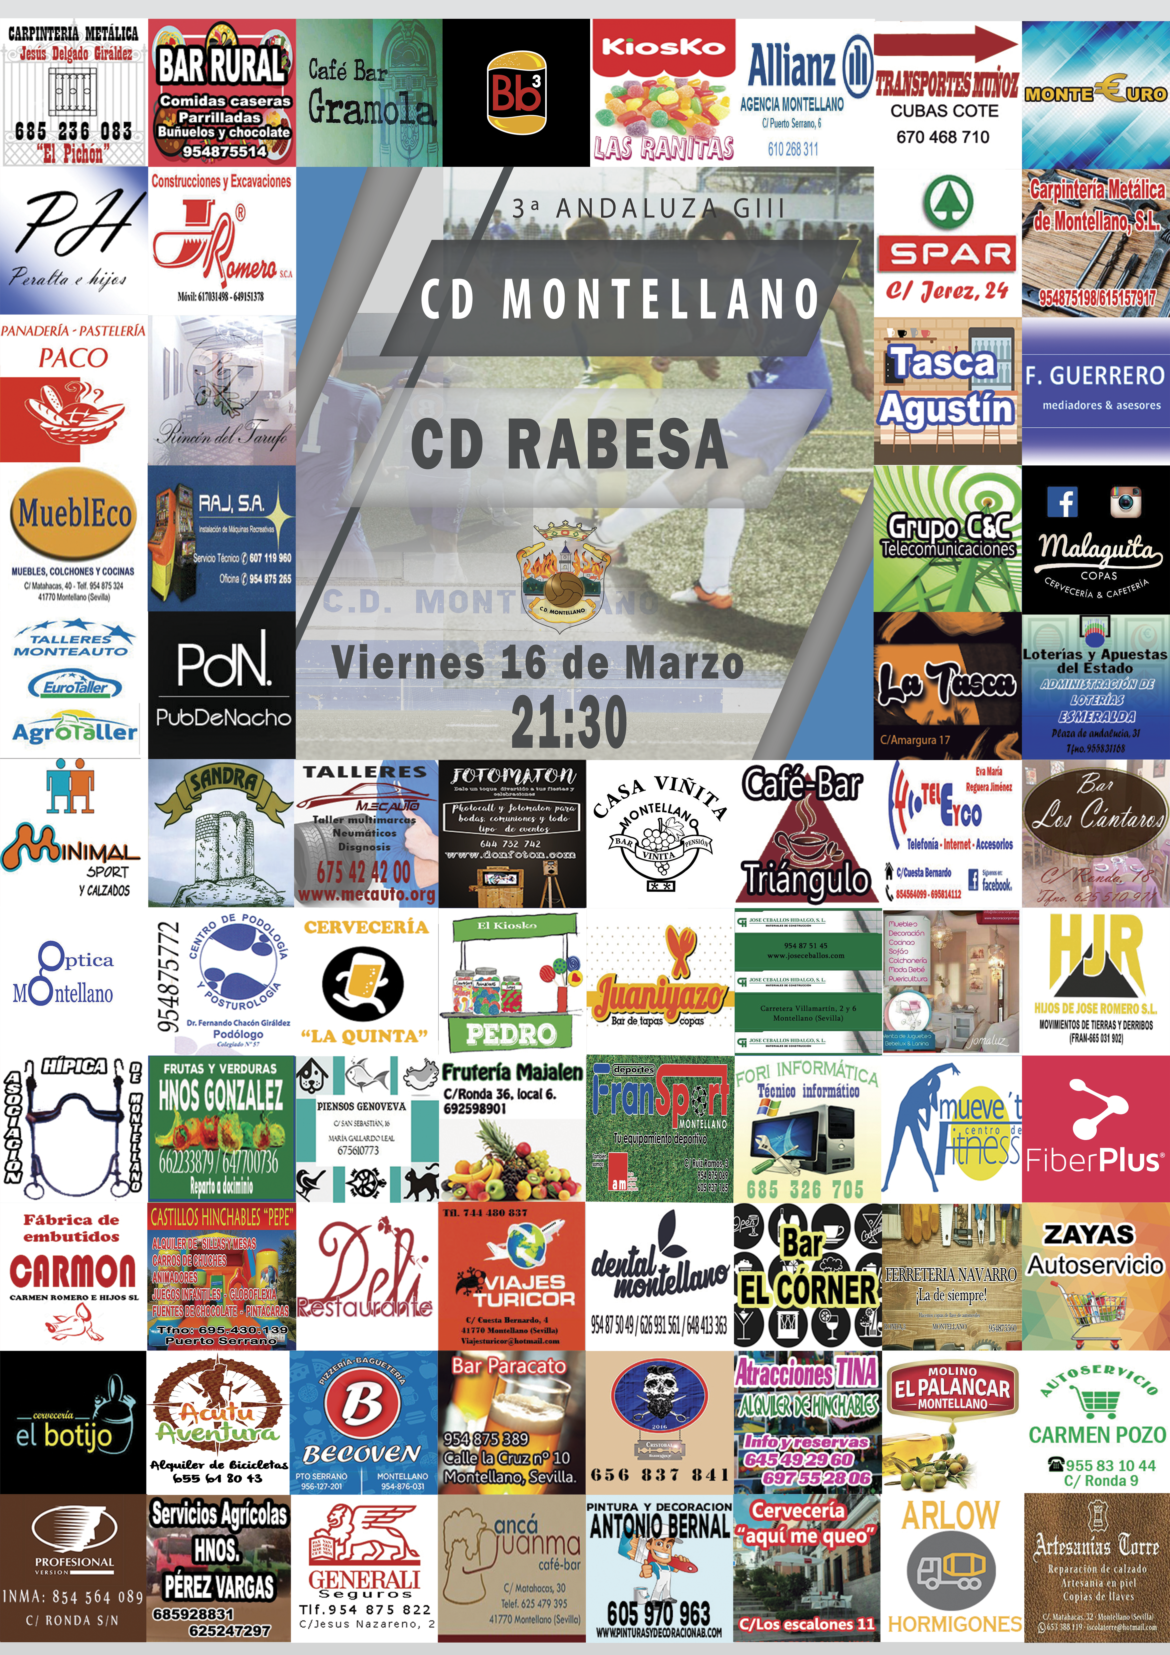 Cartel-CD-Montellano-vs-CD-Rabesa-v2